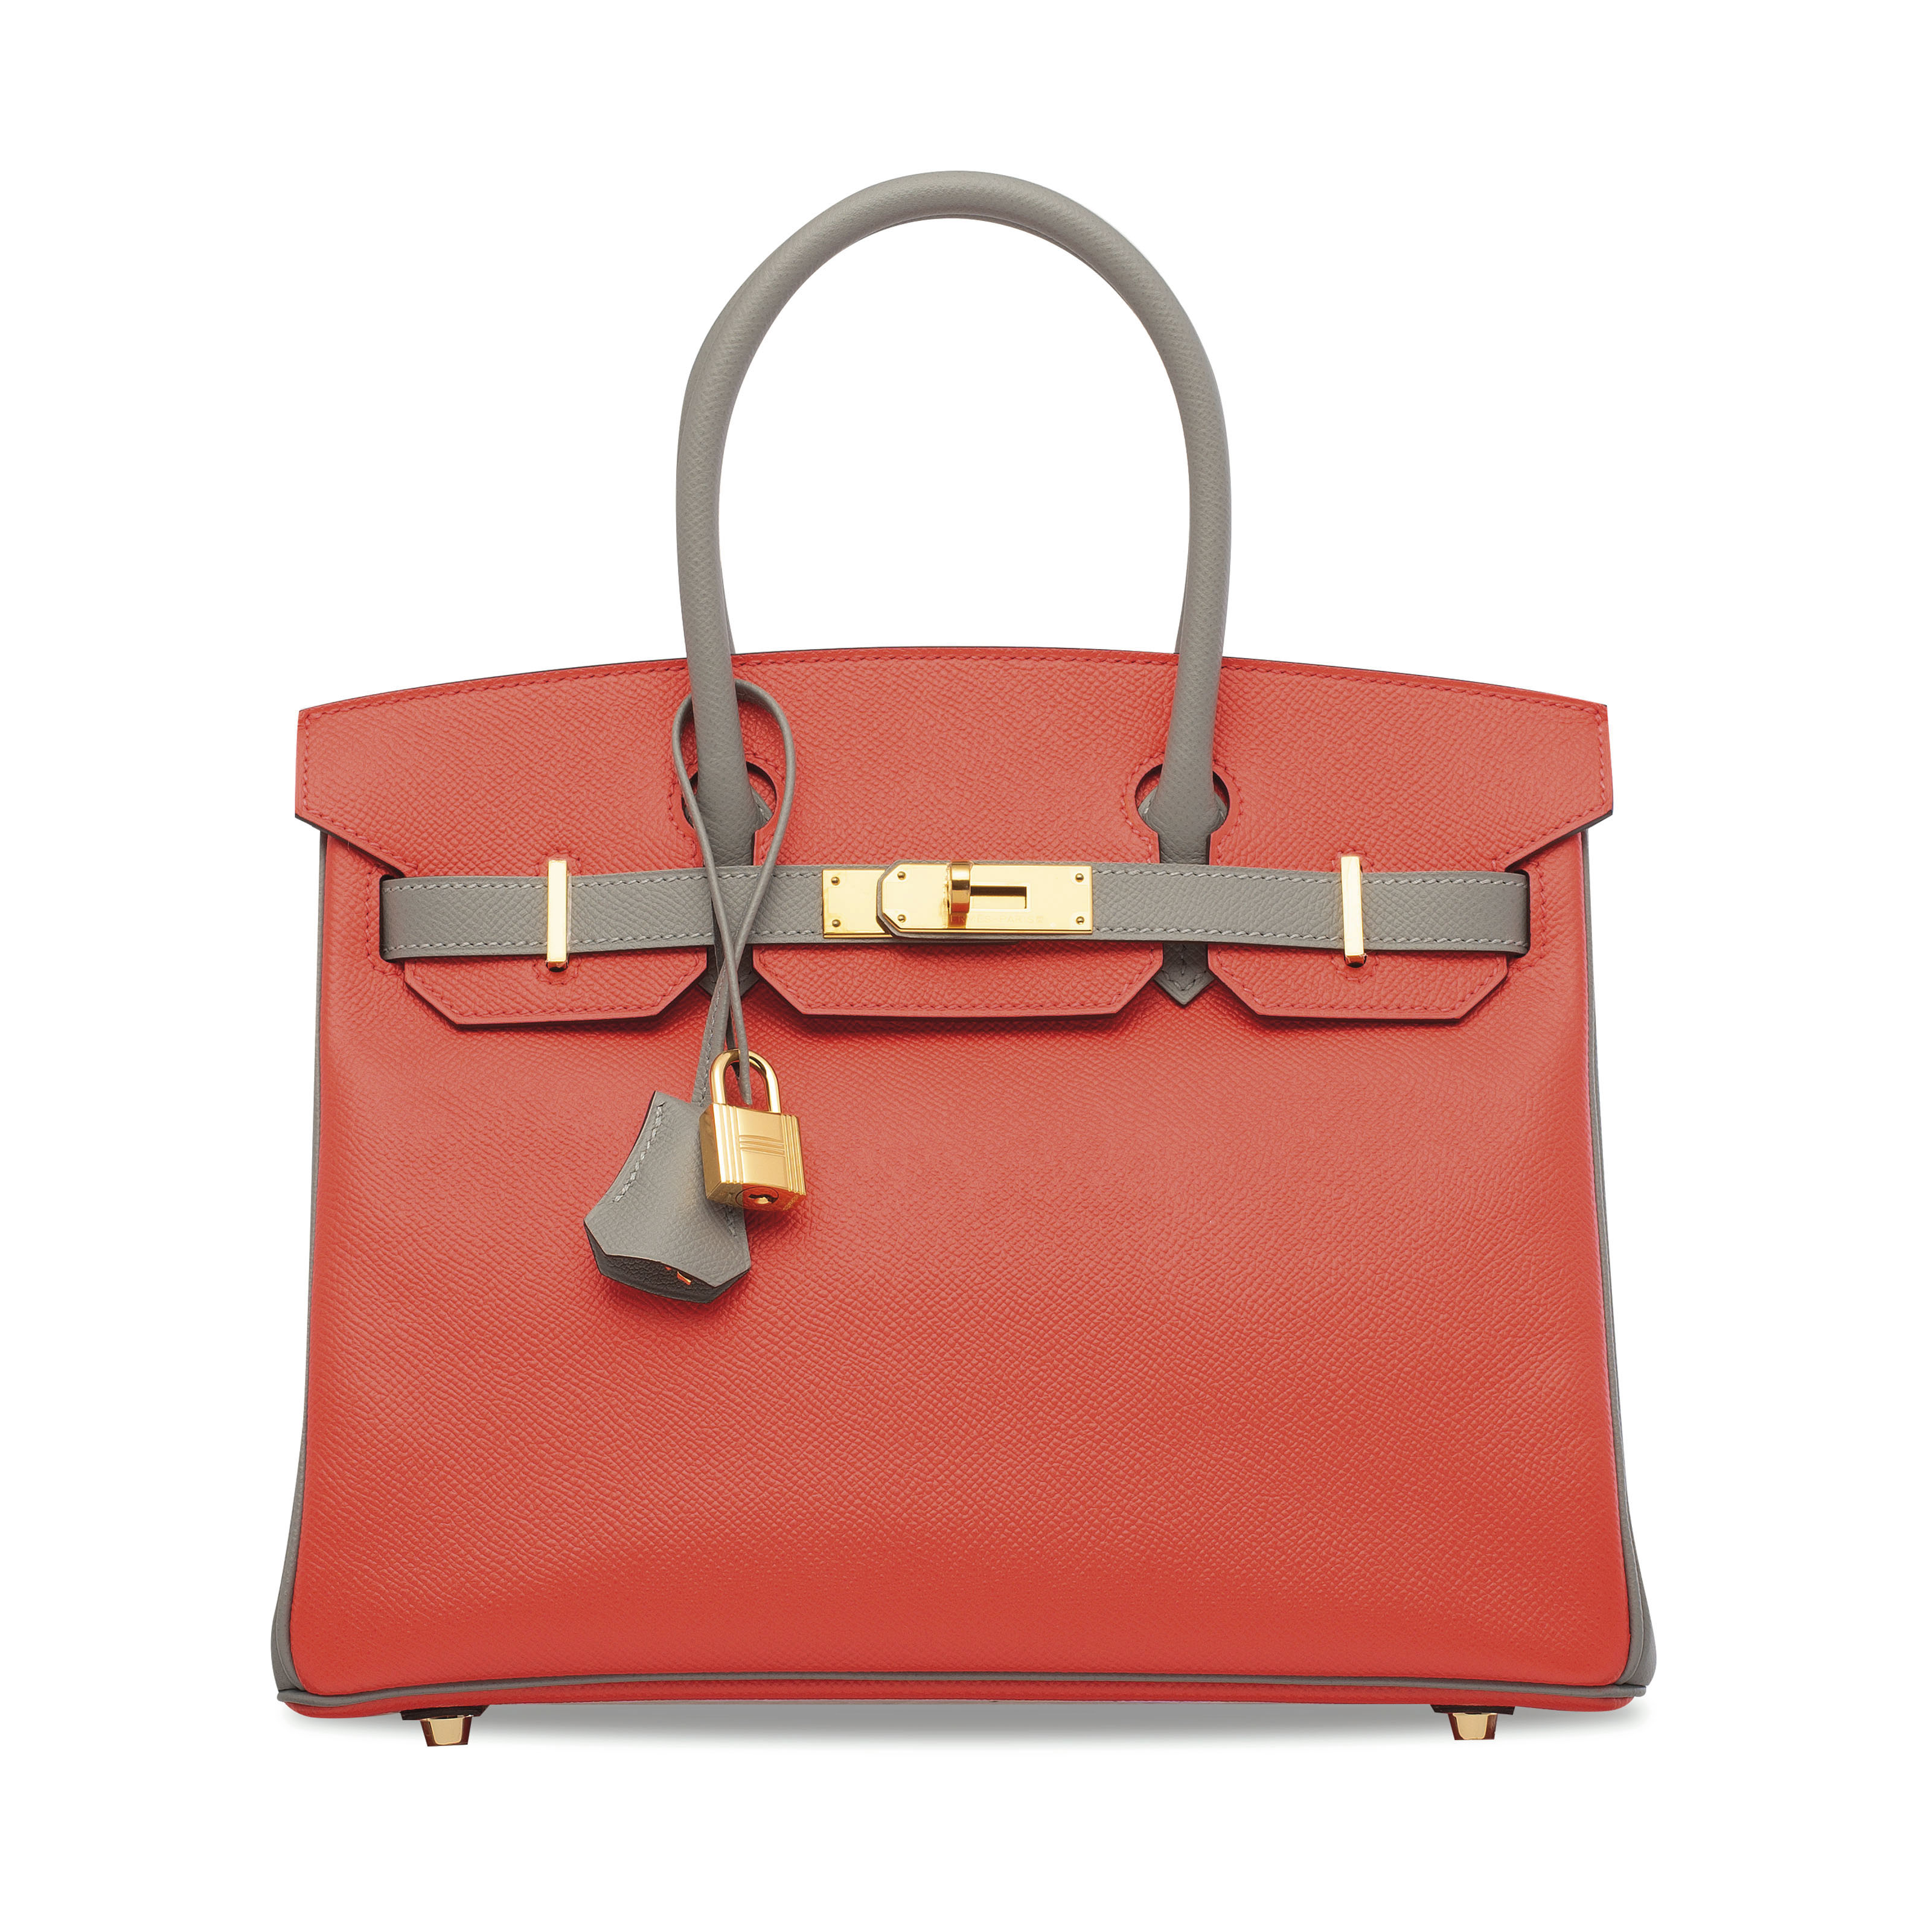 A CUSTOM ROUGE PIVOINE & GRIS MOUETTE EPSOM LEATHER BIRKIN 30 WITH GOLD...